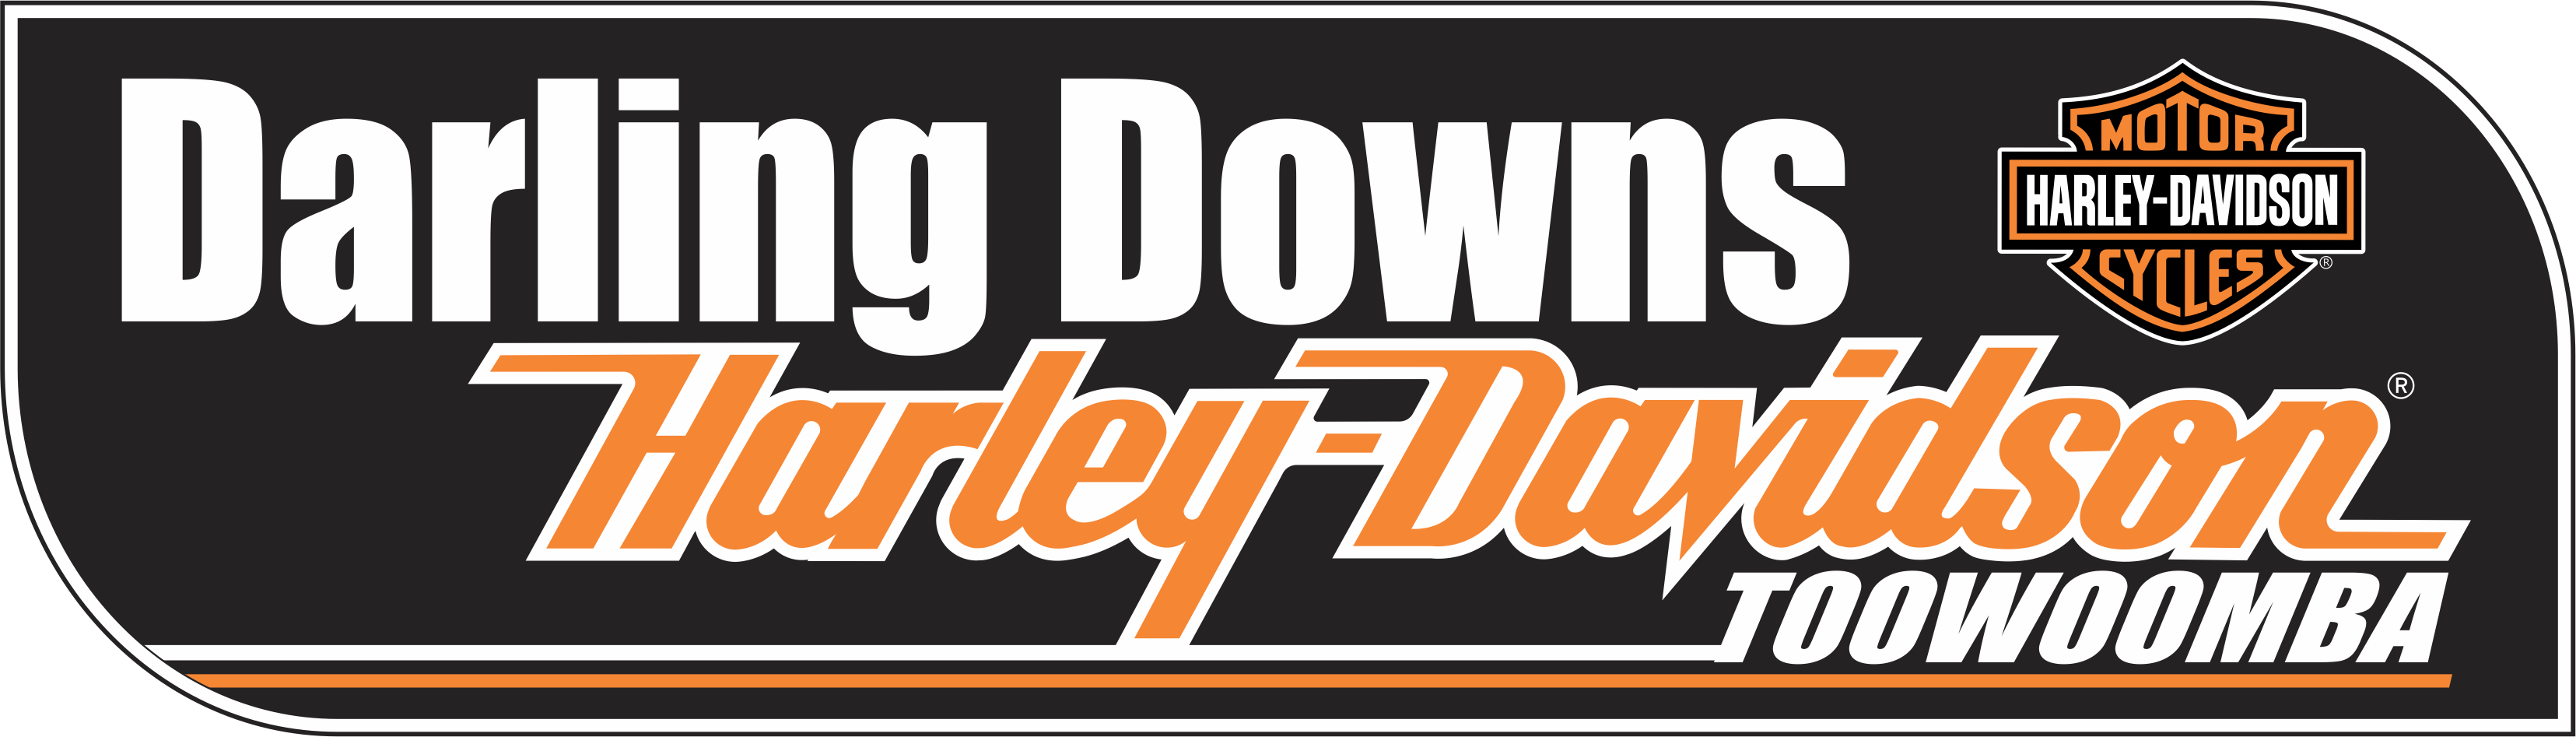 Darling Downs Harley-Davidson<sup>&reg;</sup>